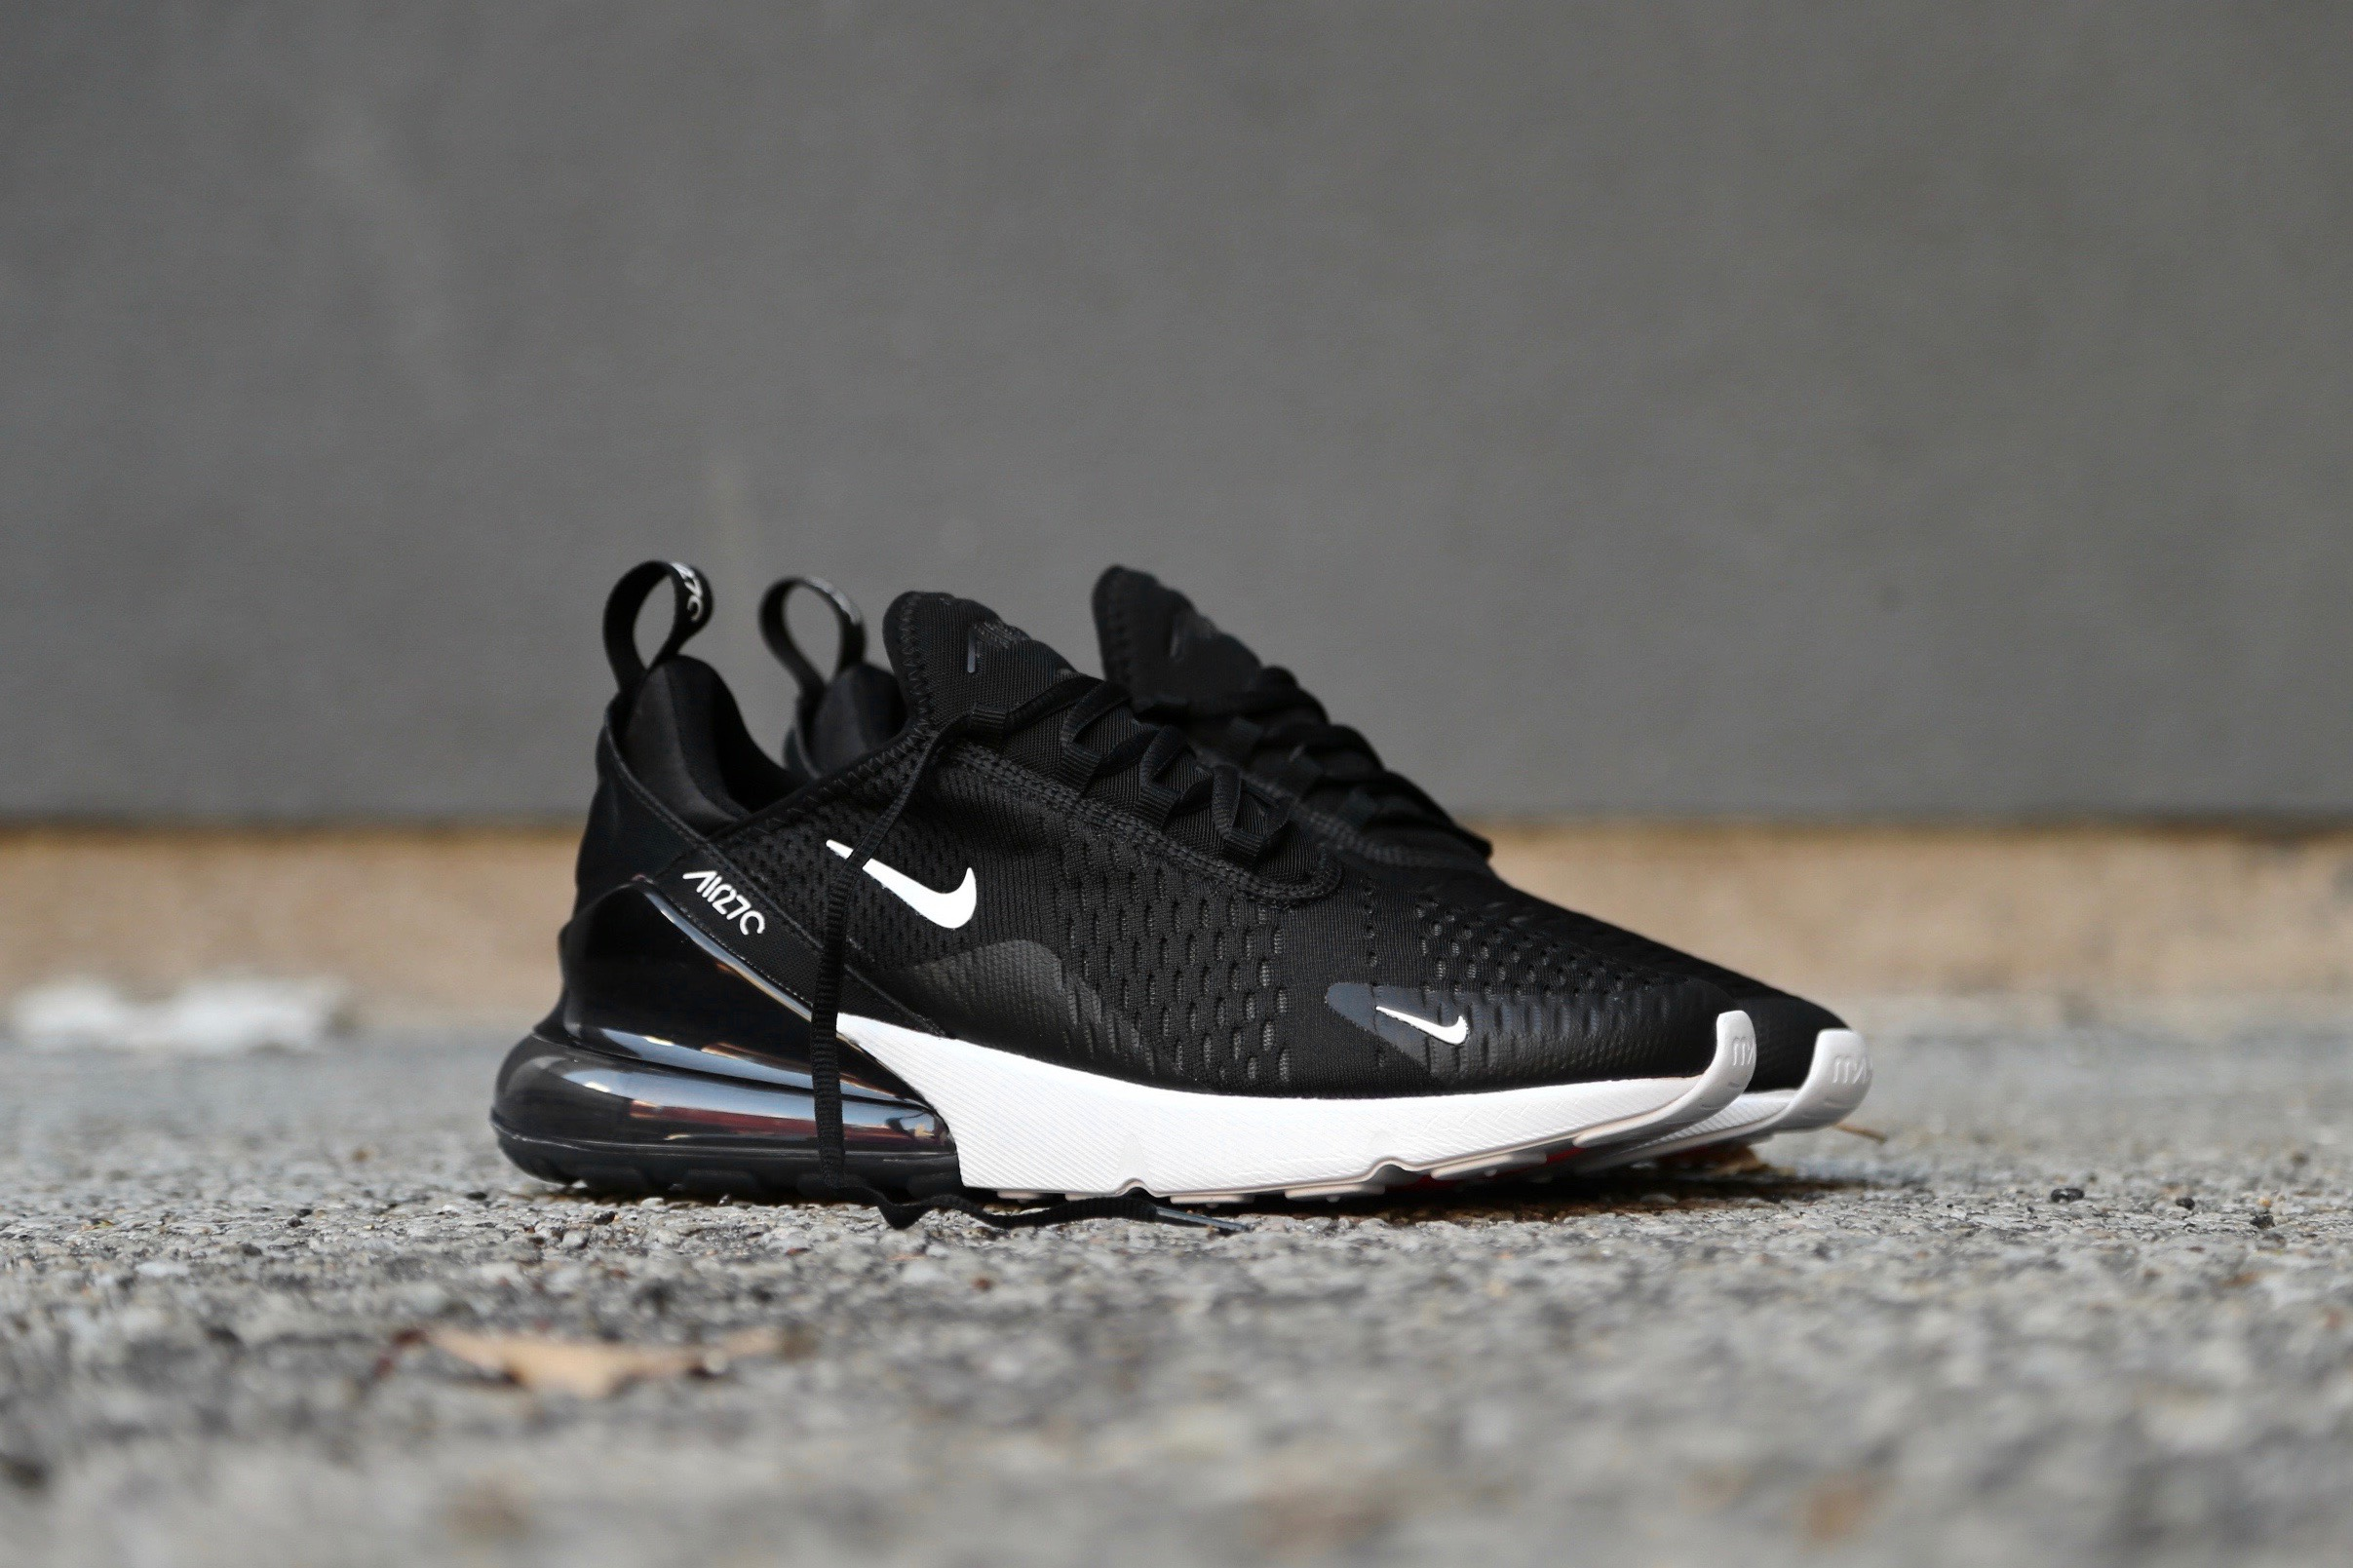 50+ Air Max 270 Black And White japan anime image